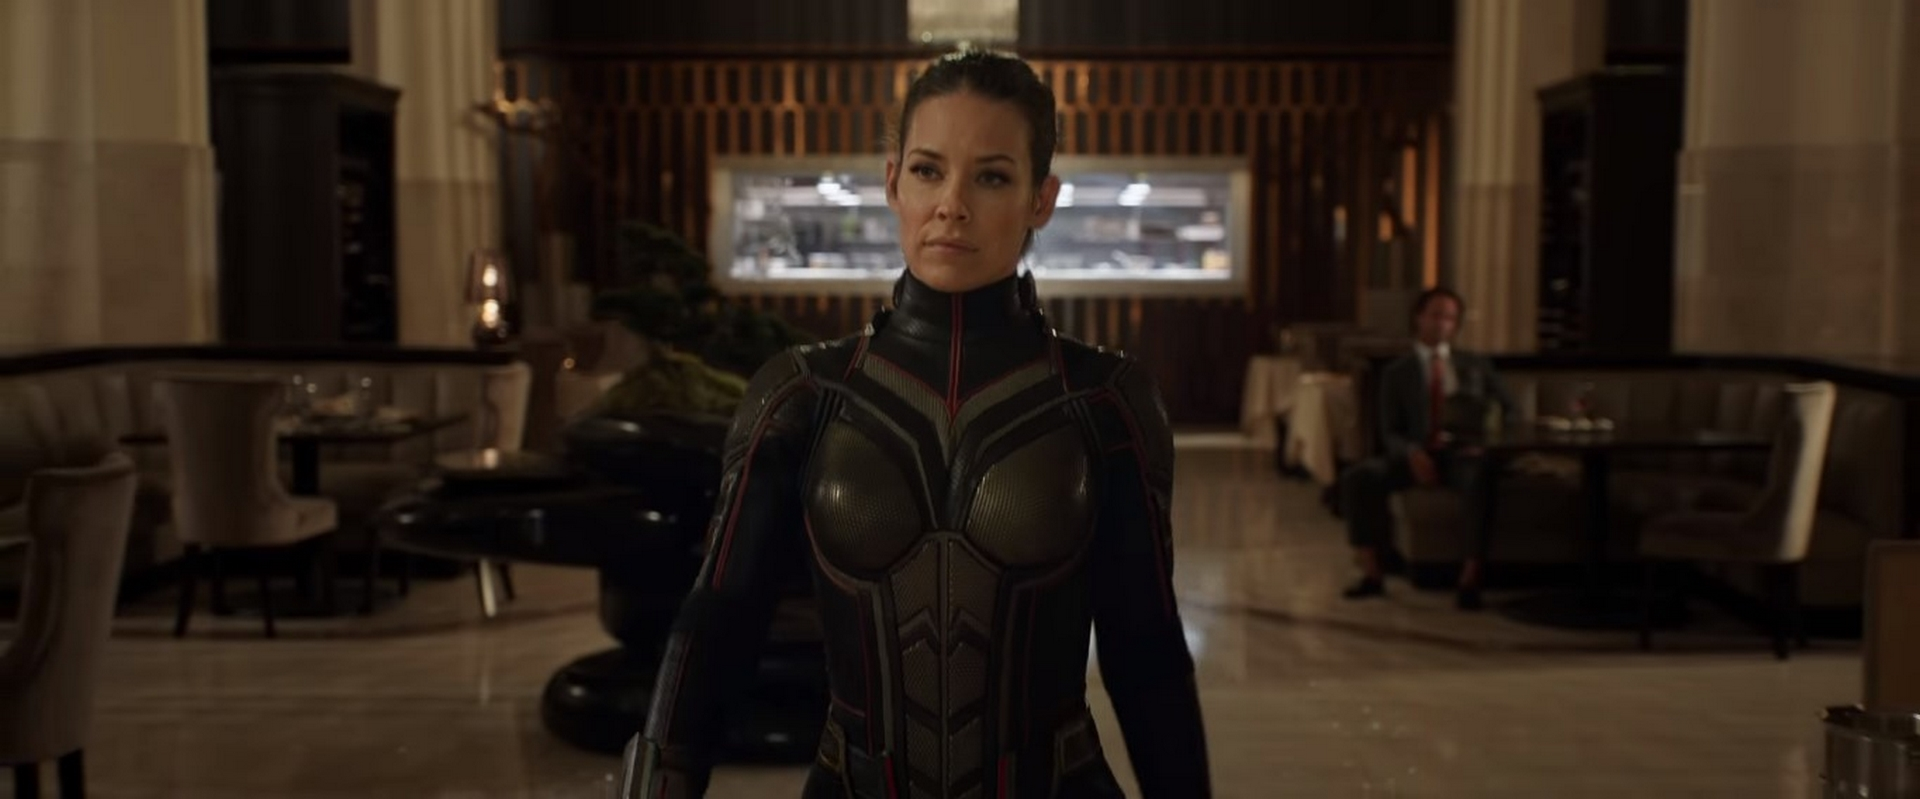 ART OF THE CUT with Ant-Man and the Wasp's Craig Wood, ACE 29